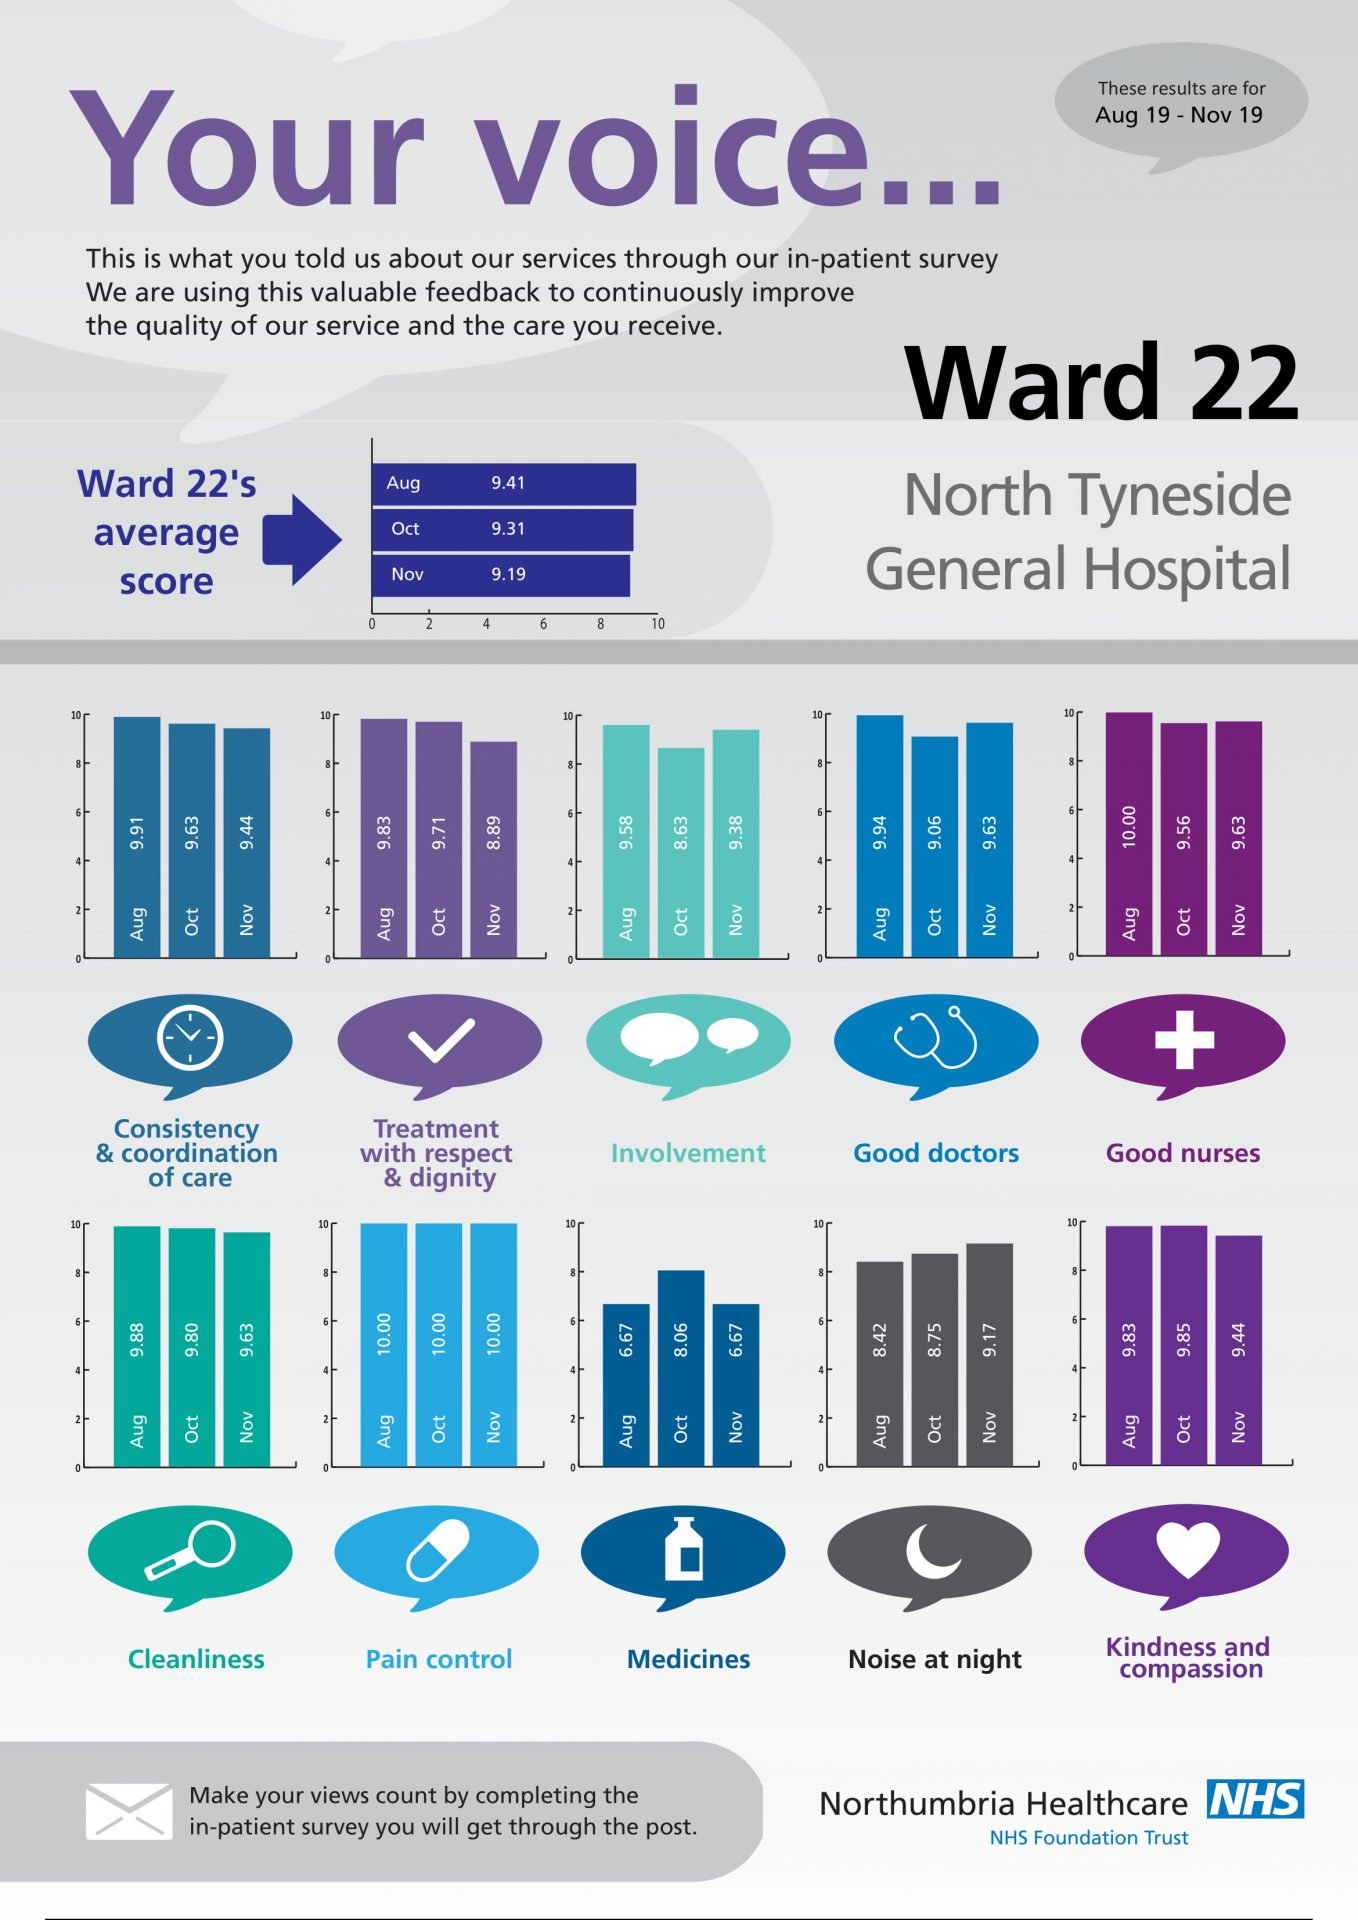 North Tyneside General Hospital - Ward 22-1